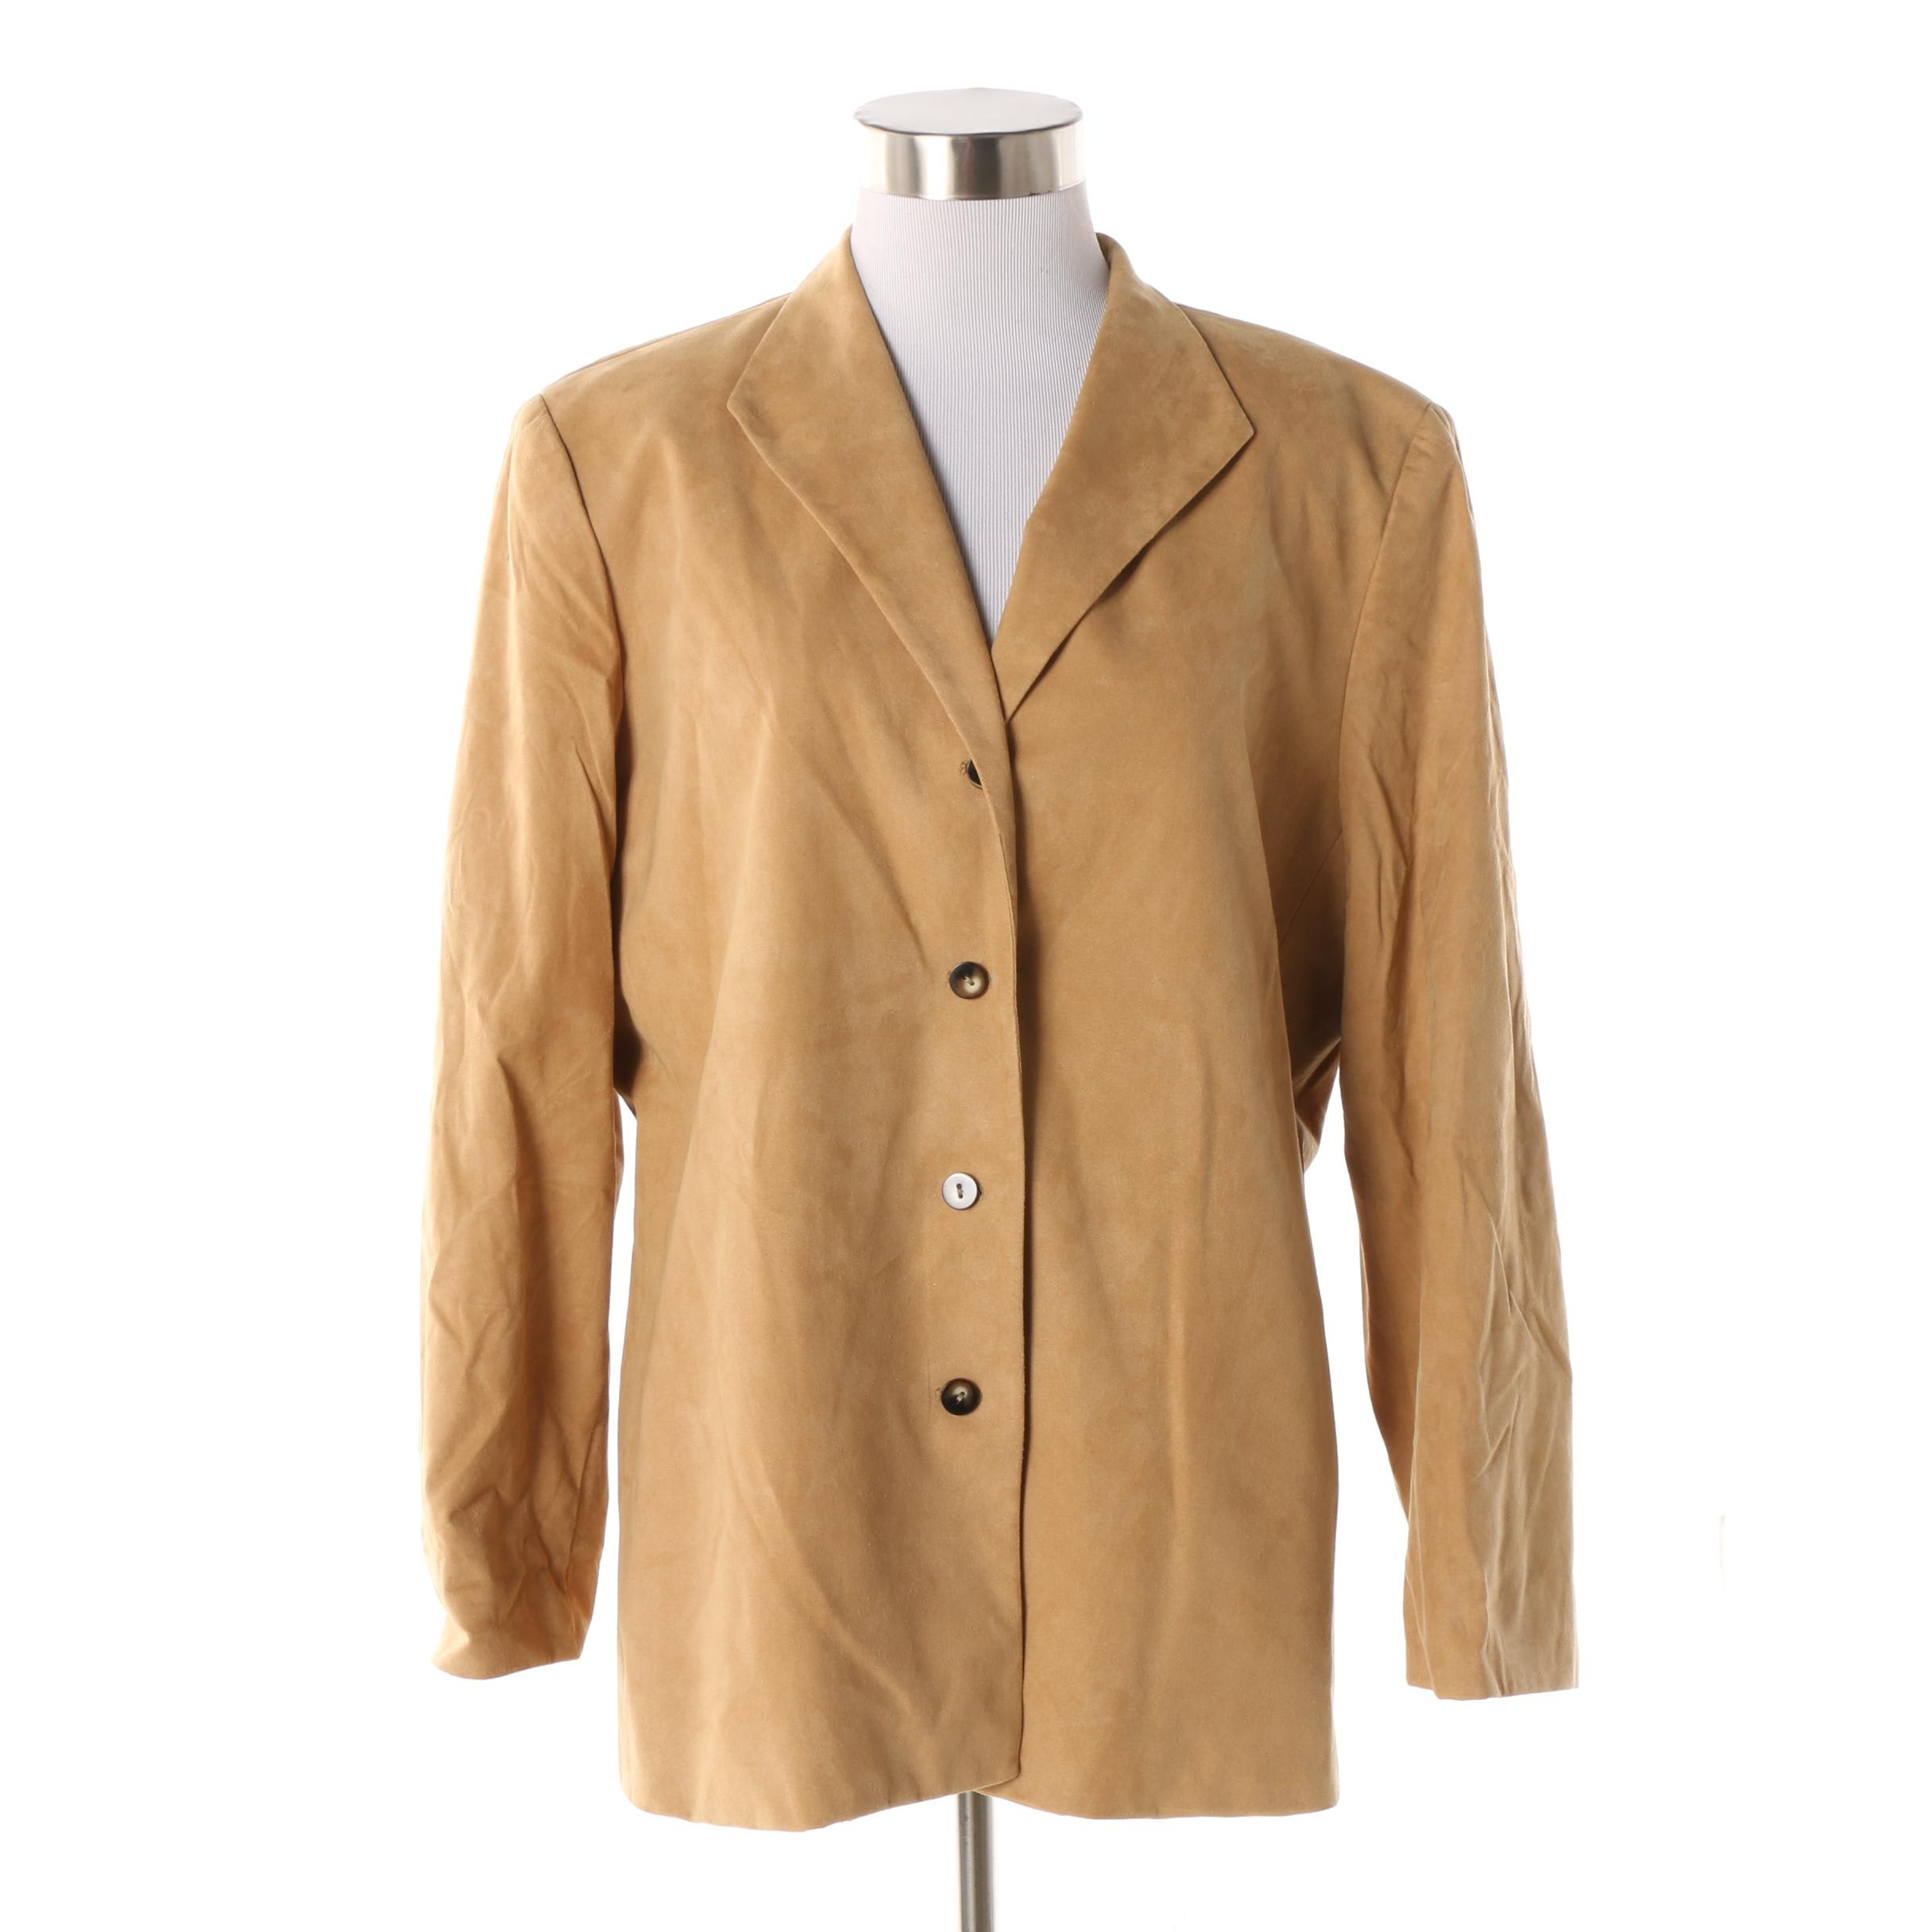 Women's Garfield & Marks Camel-Colored Faux Leather Jacket